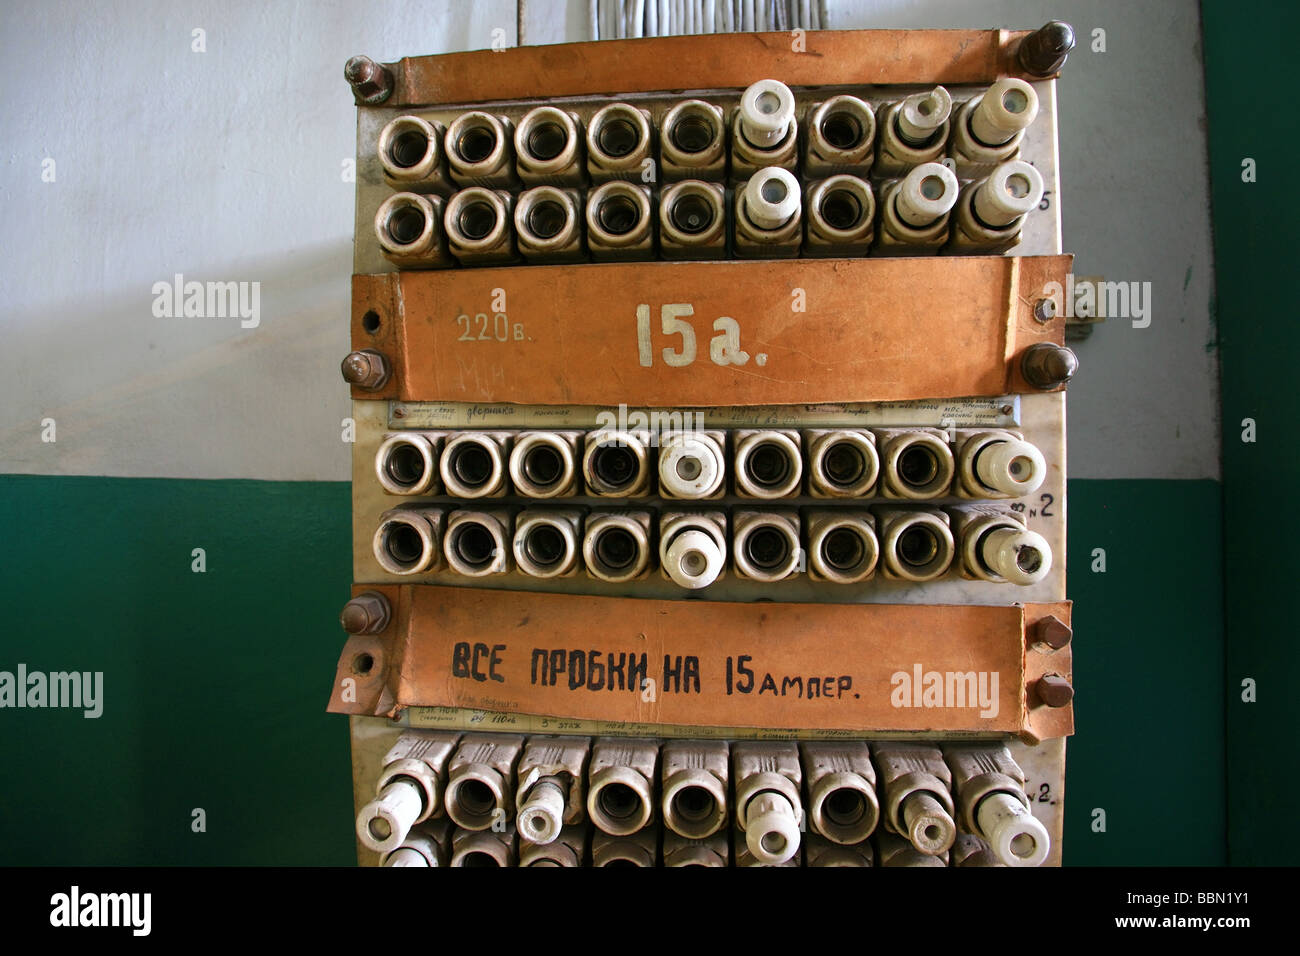 hight resolution of old fuses in a fuse box stock image